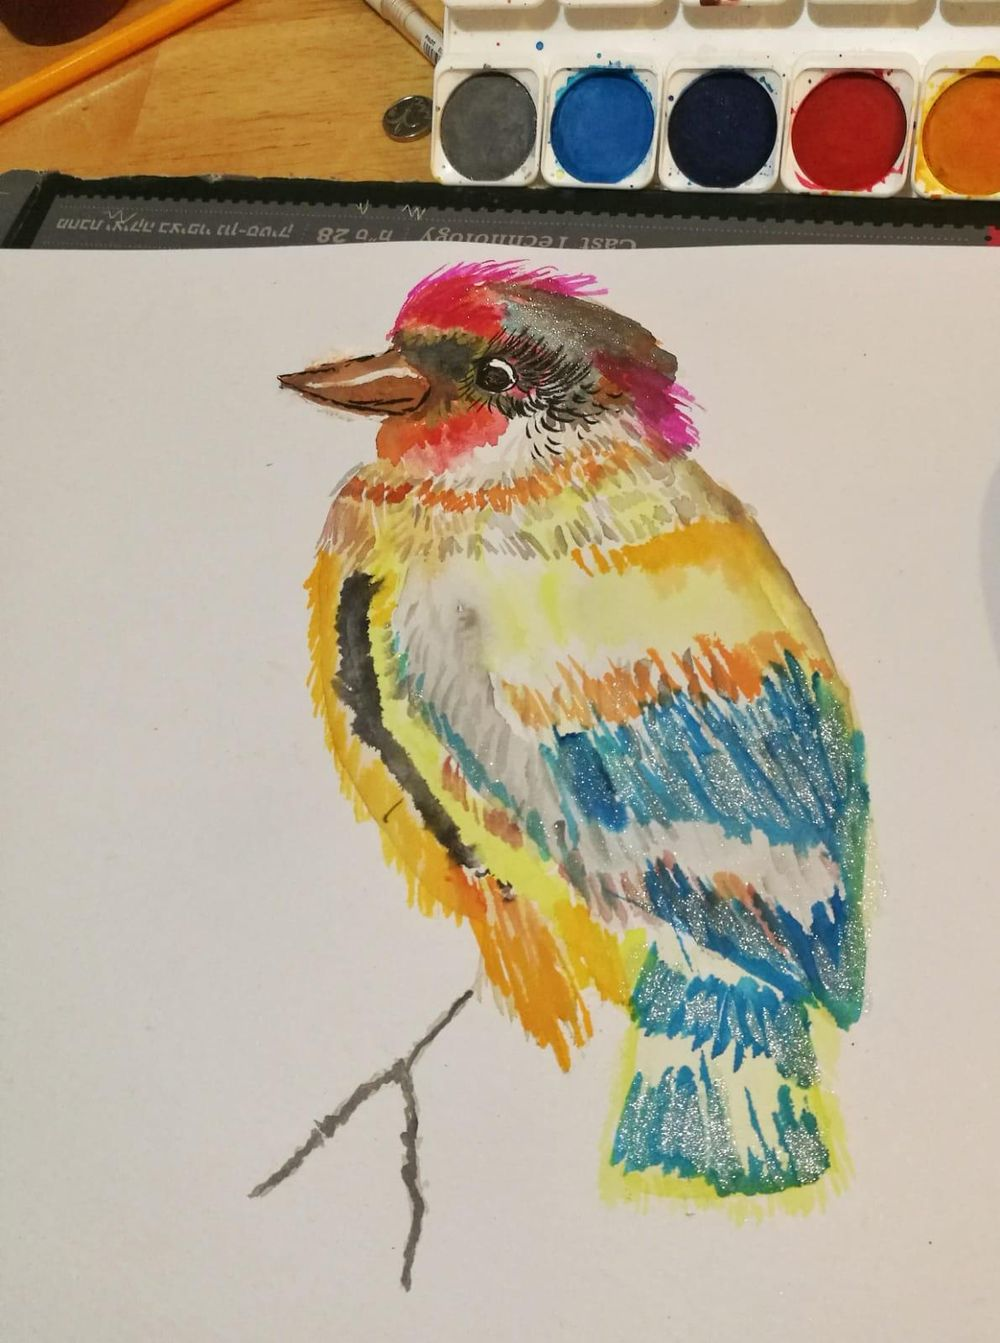 Sparkly Bird! - image 1 - student project